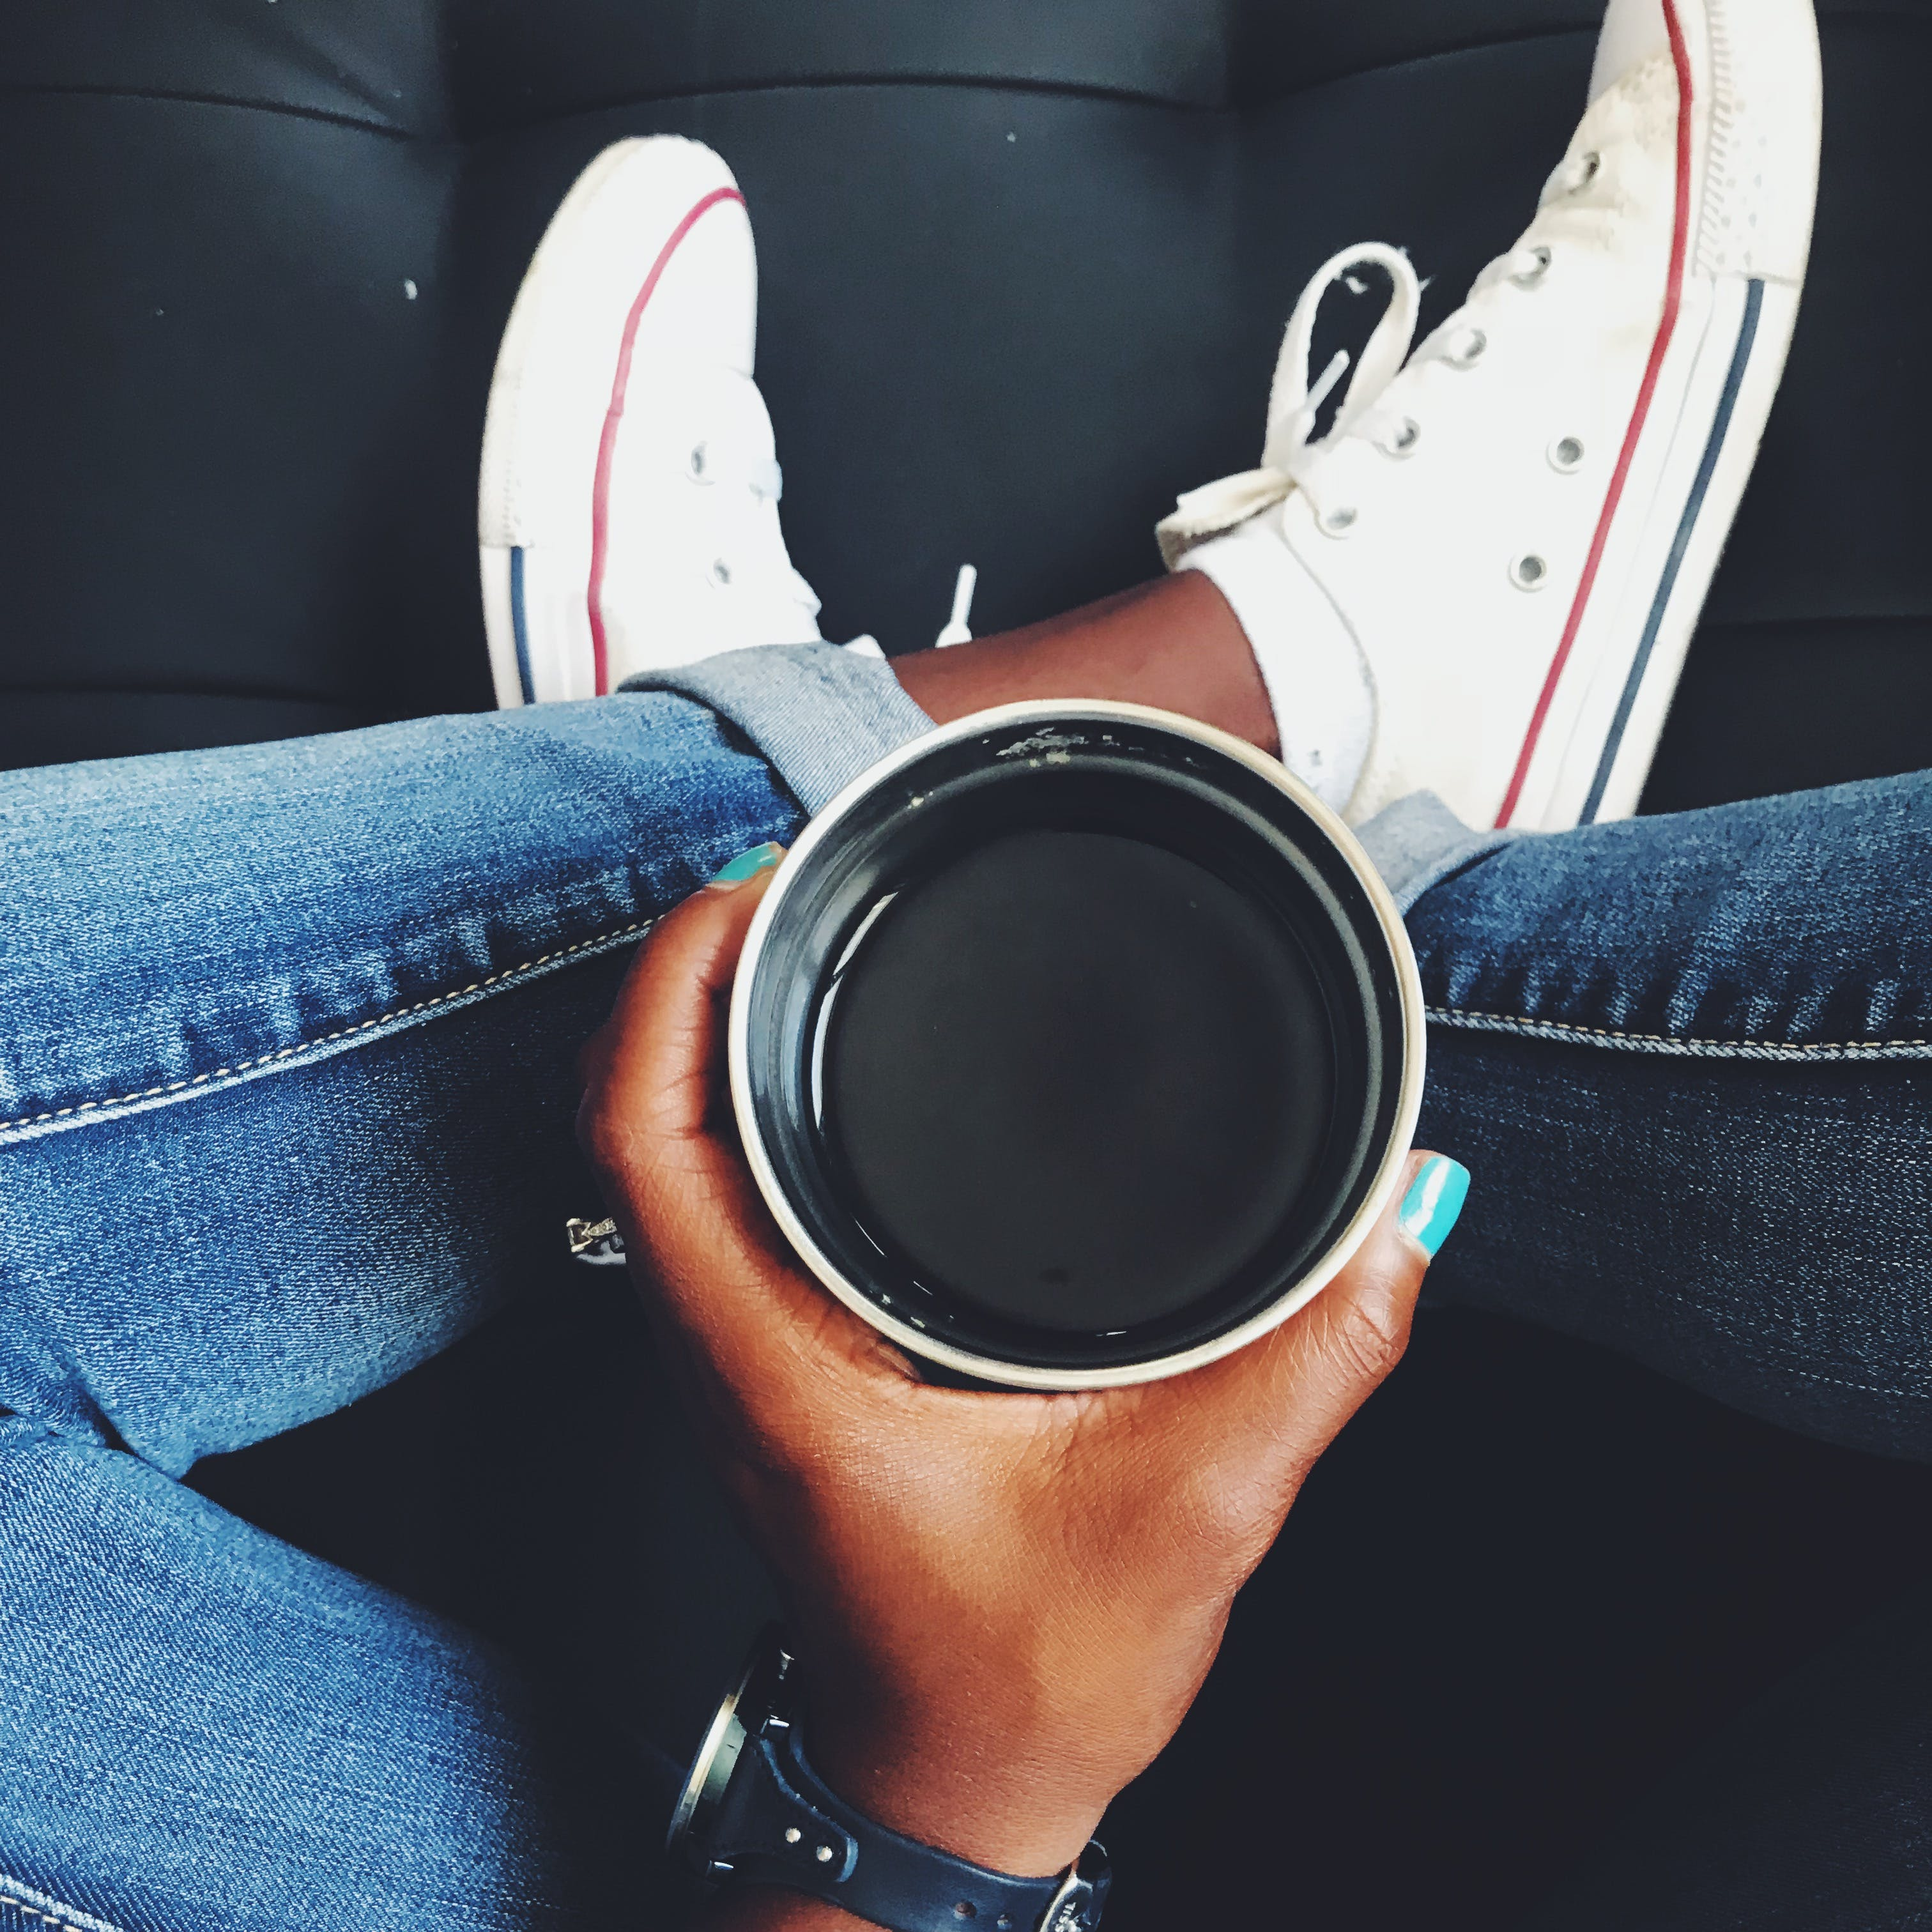 Top View Photo of Person Holding Cup